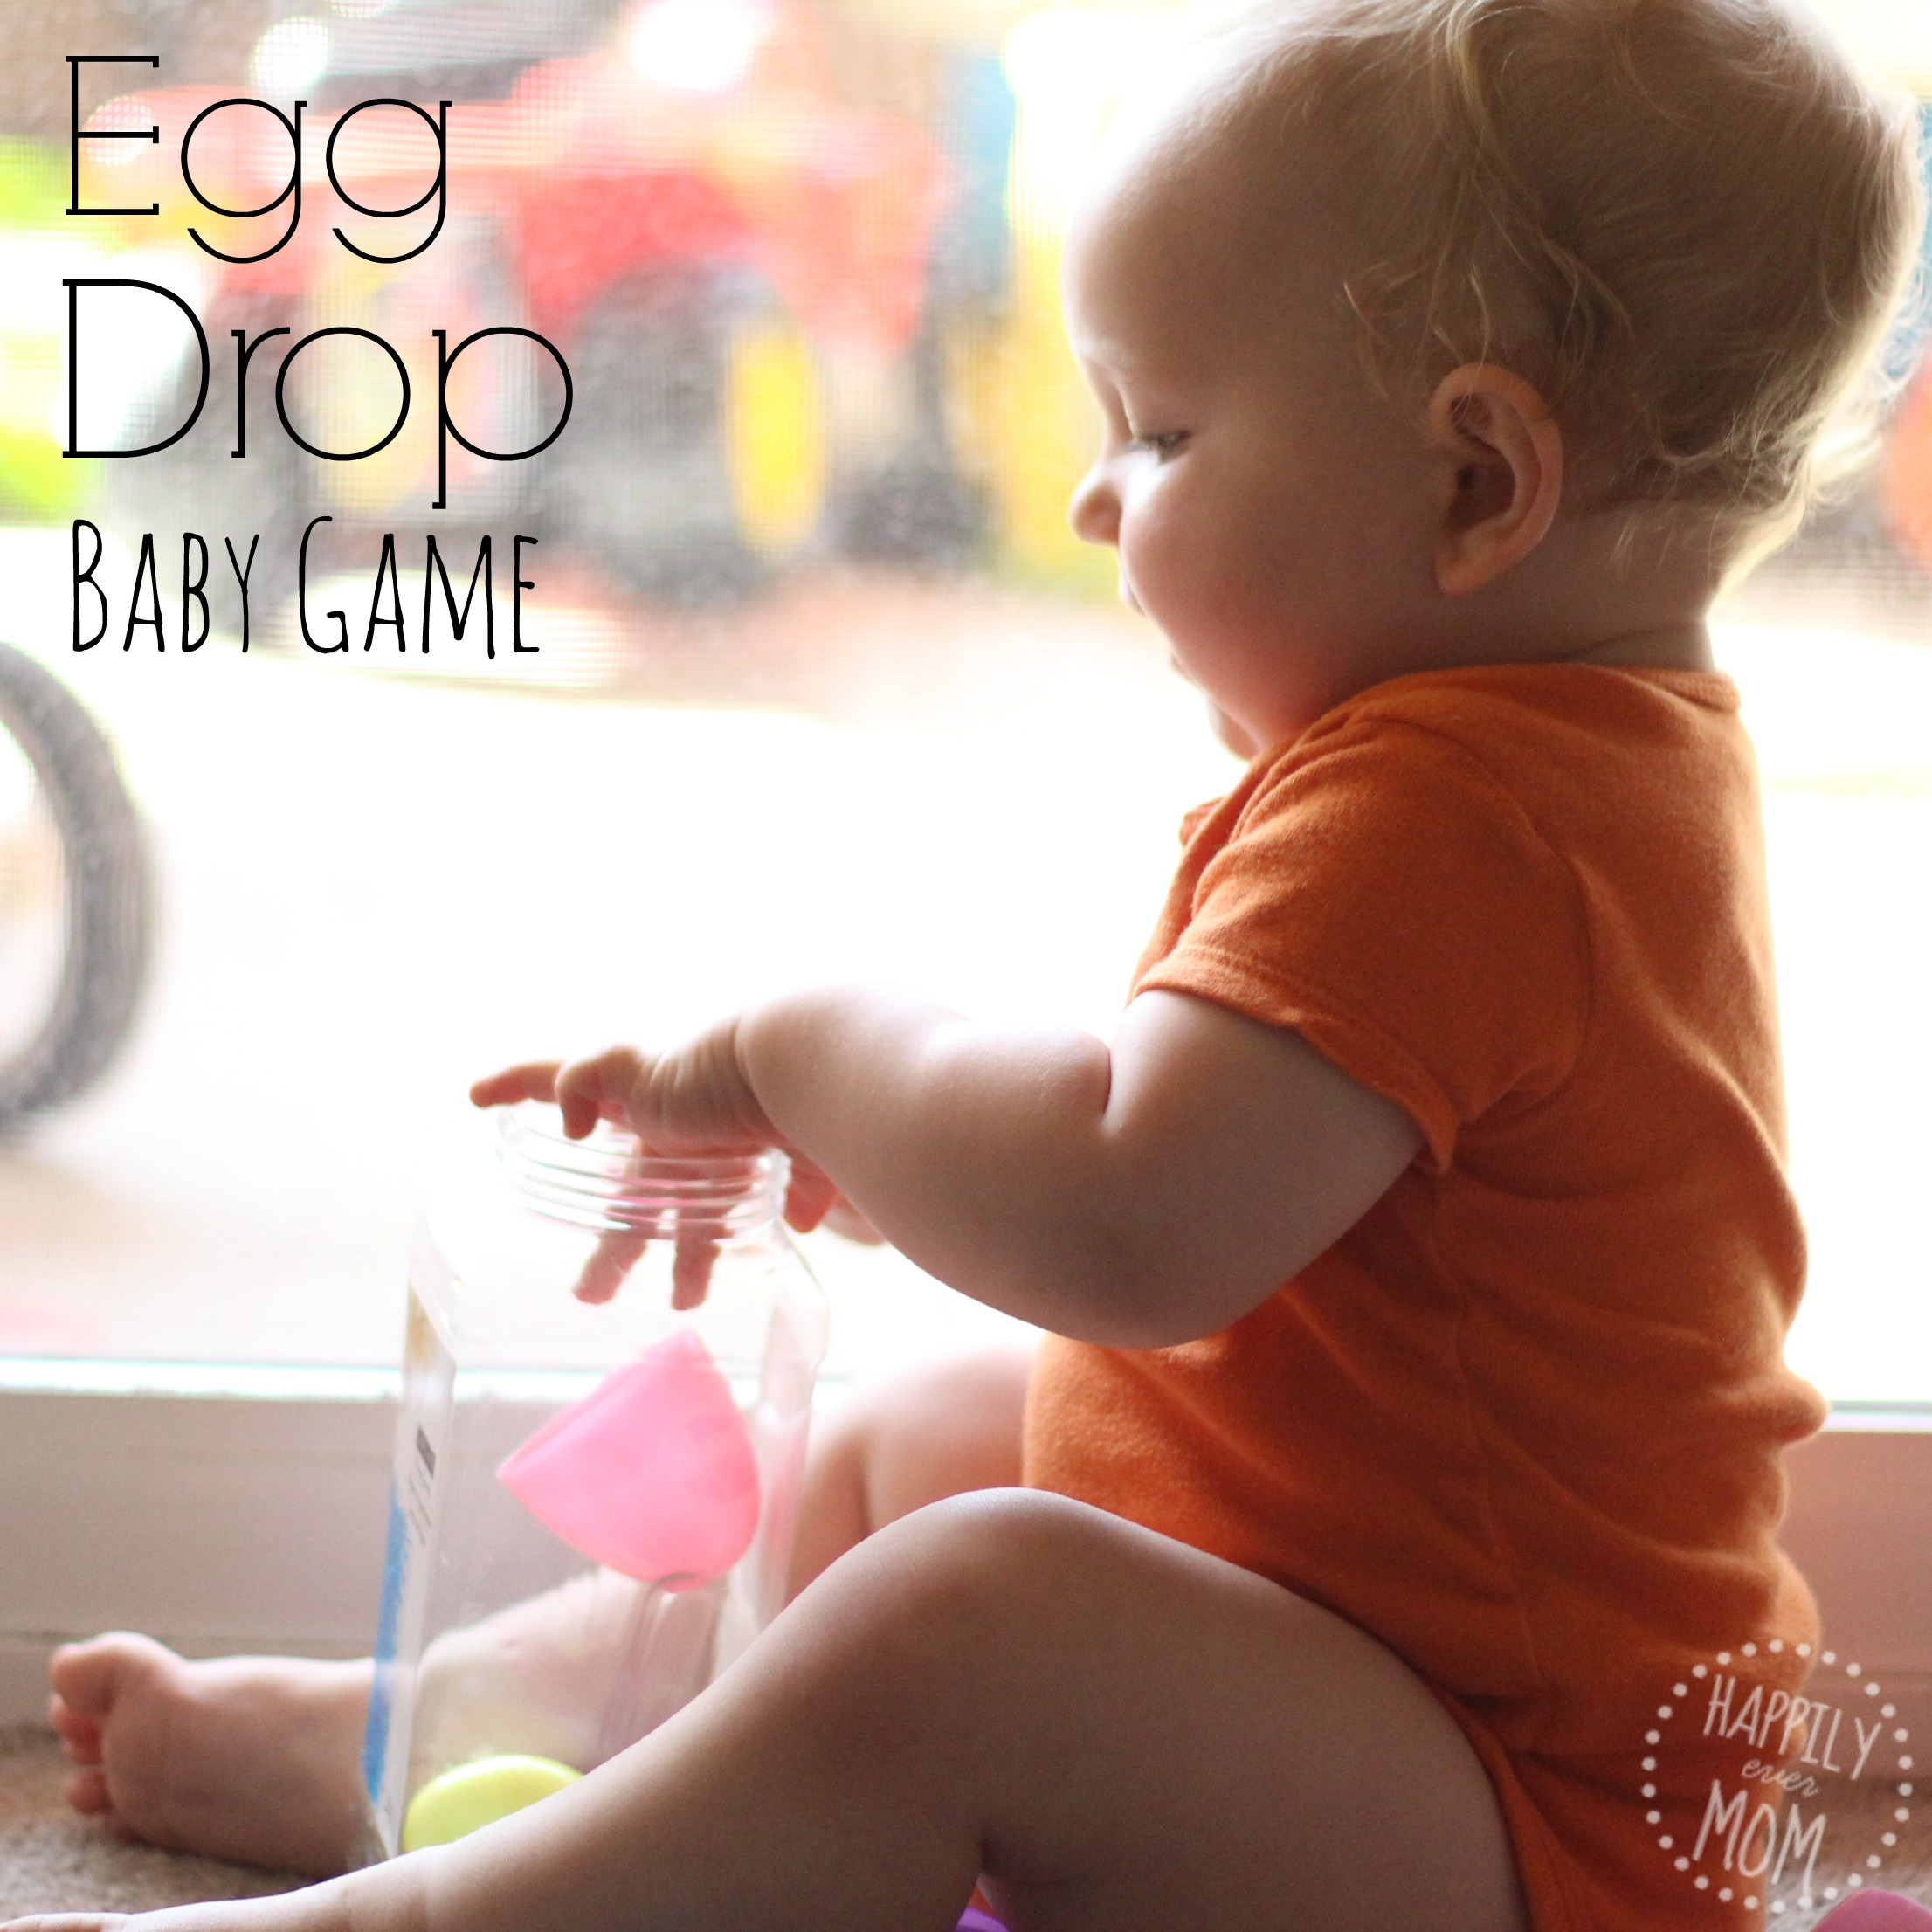 Egg Drop Baby Game